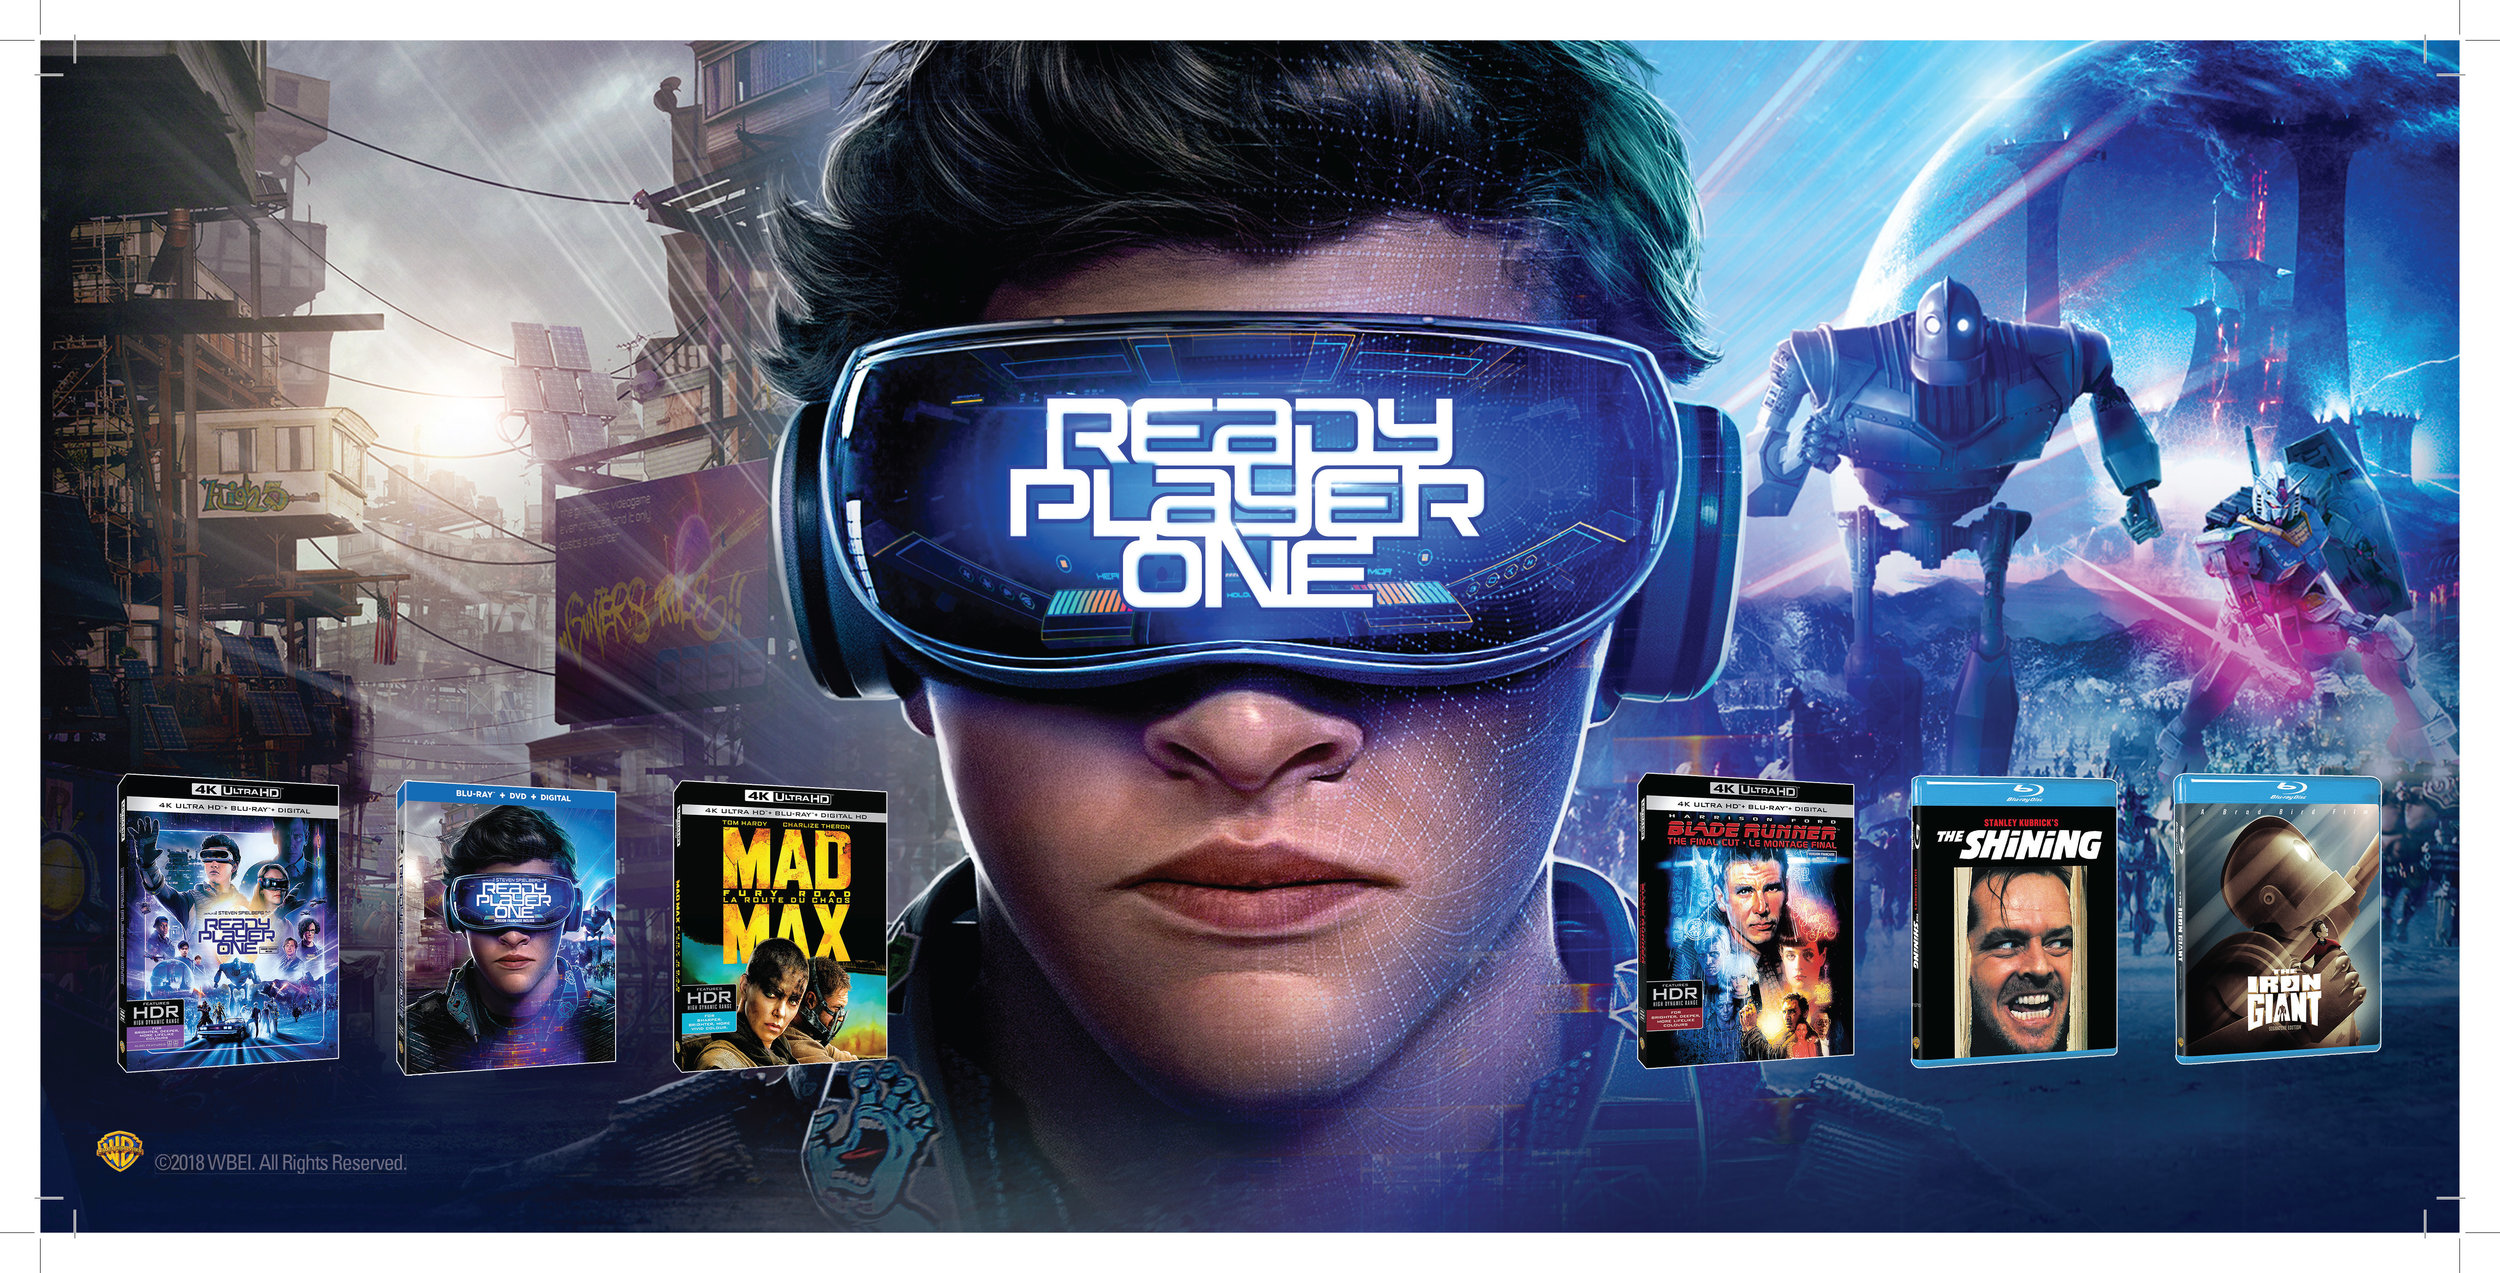 WB_ReadyPlayerOne_Sunrise_17x8.125_PROOF.jpg